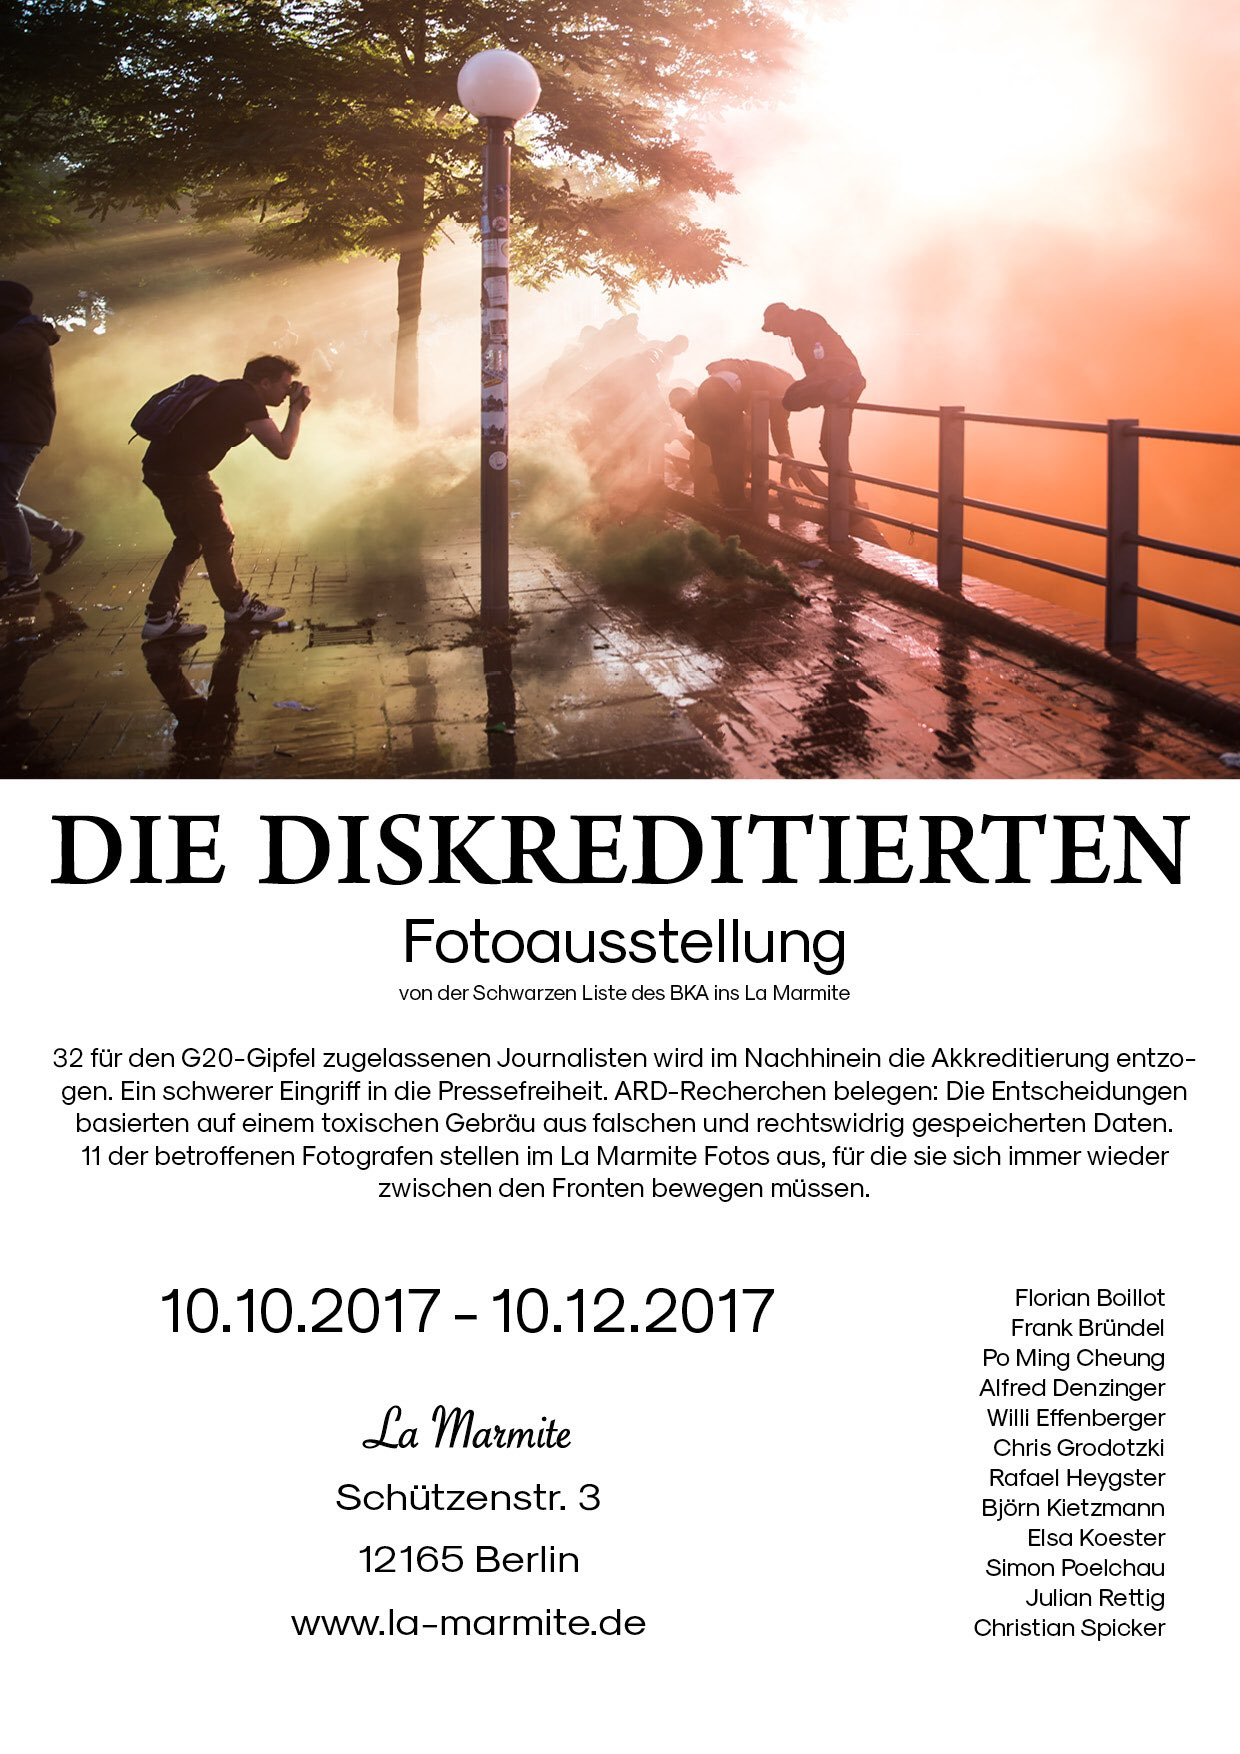 Die Diskreditierten